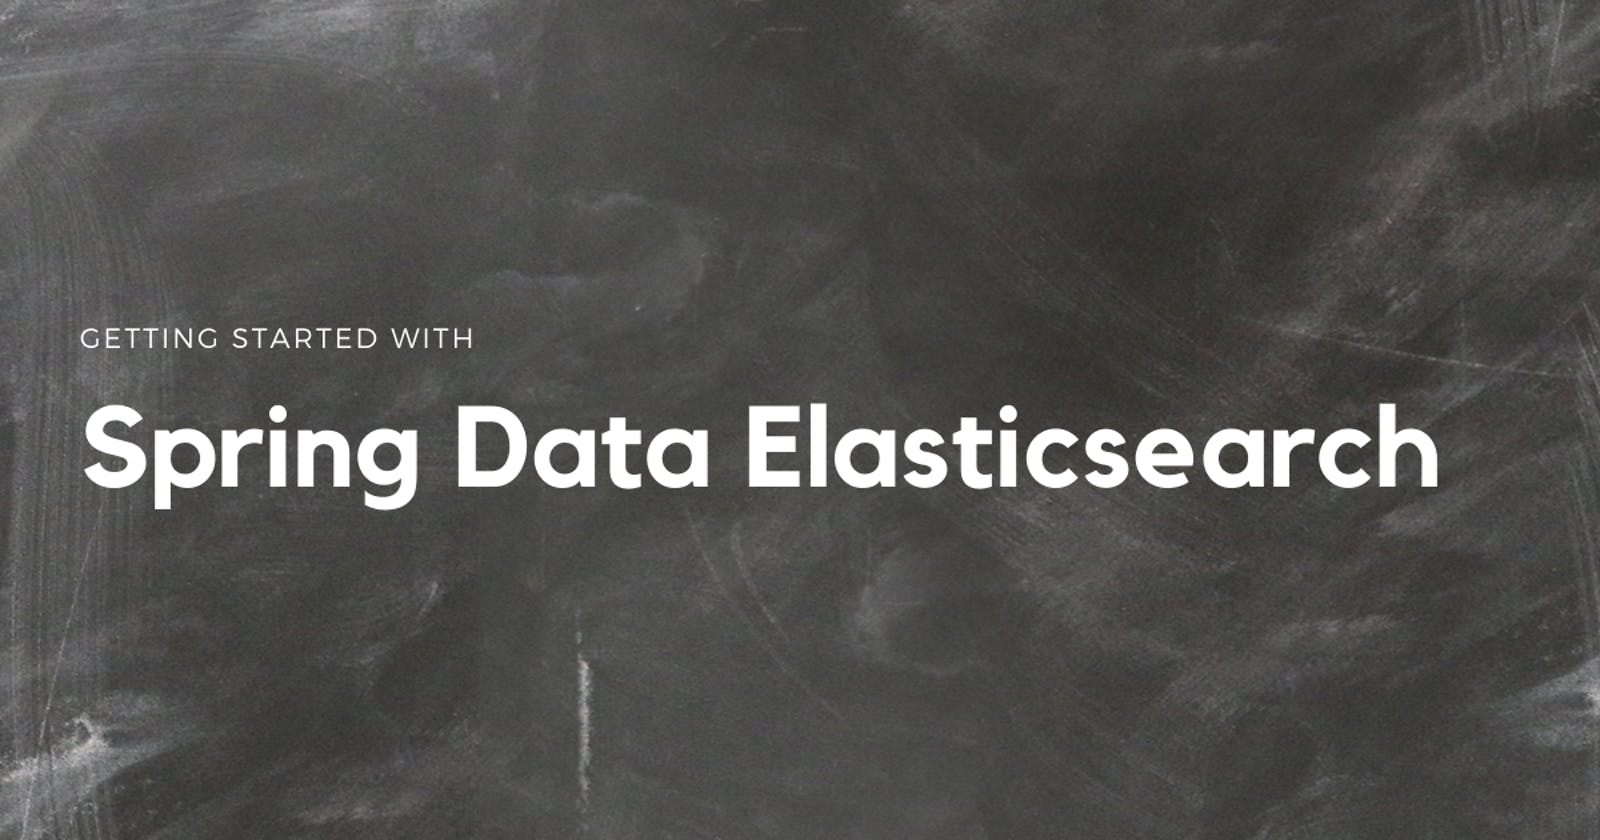 Getting Started with Spring Data Elasticsearch